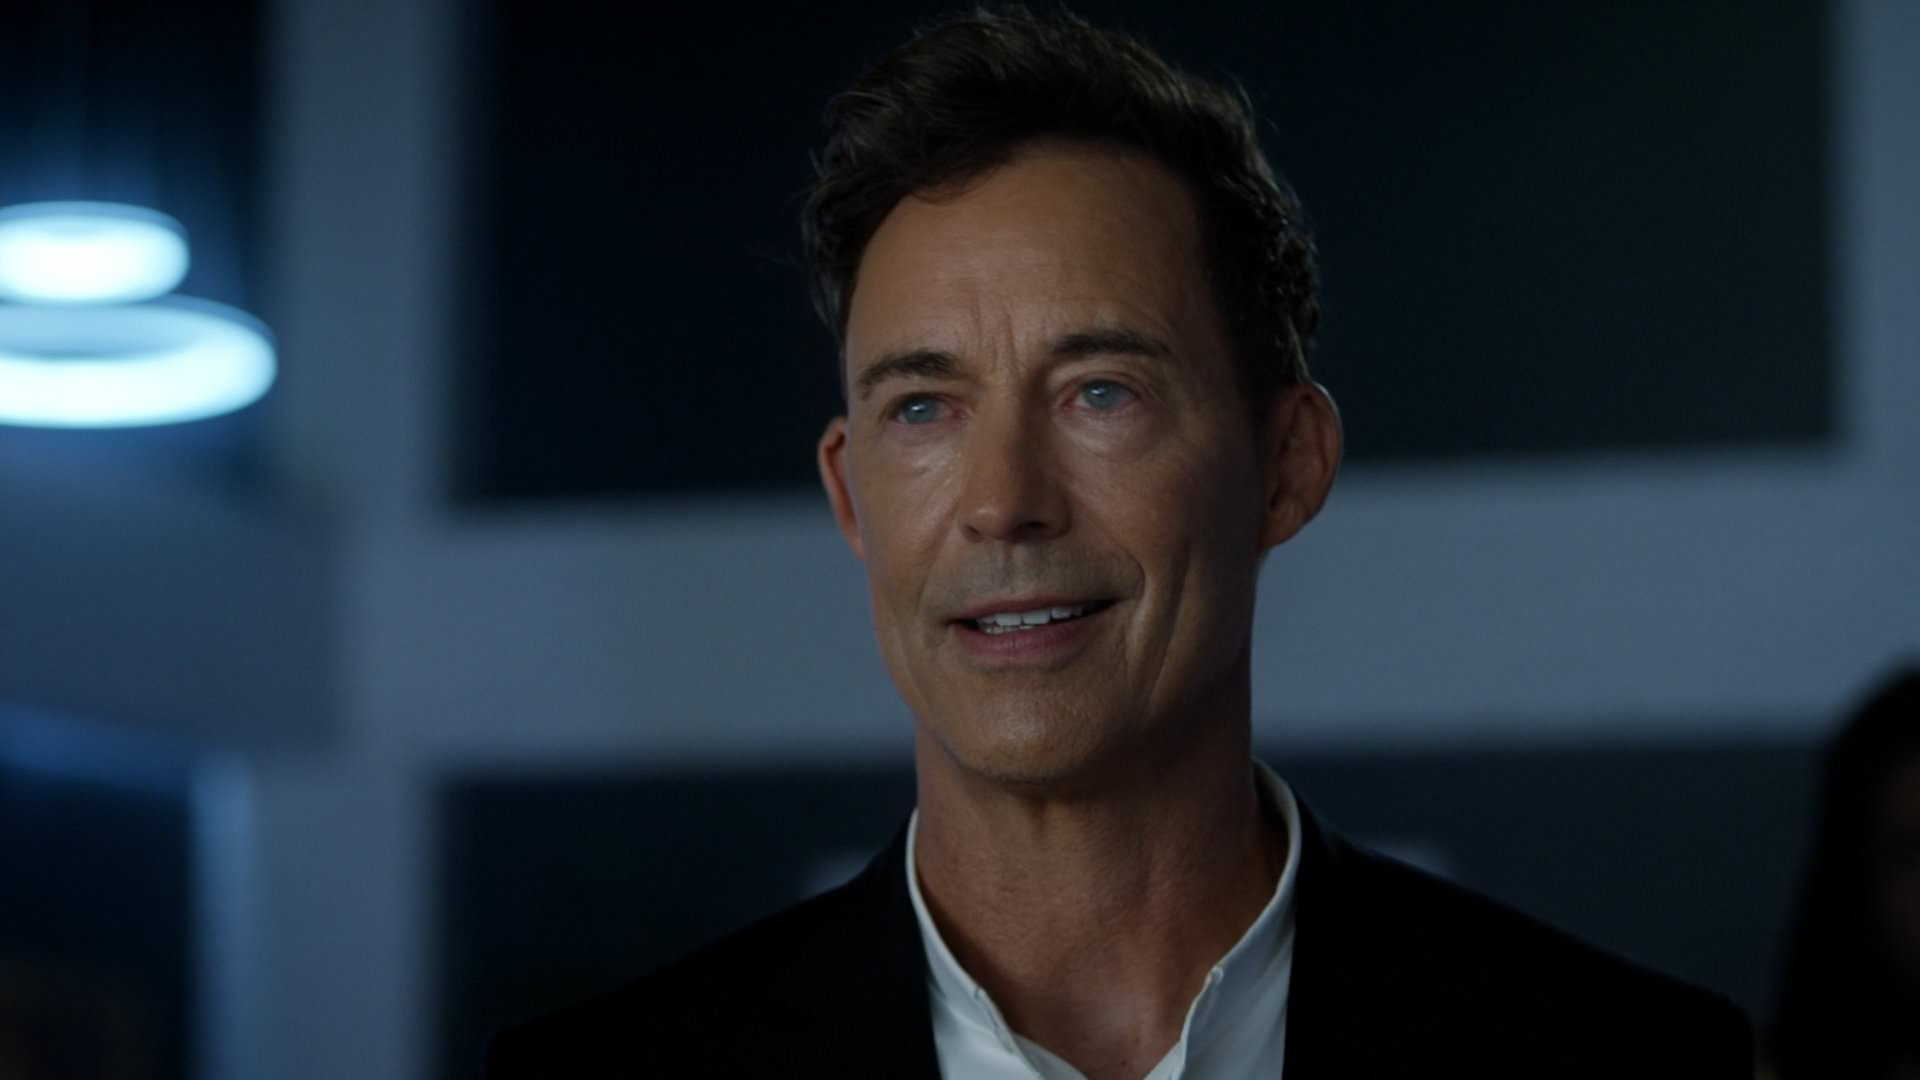 Eobard Thawne | Arrowverse Wiki | FANDOM powered by Wikia